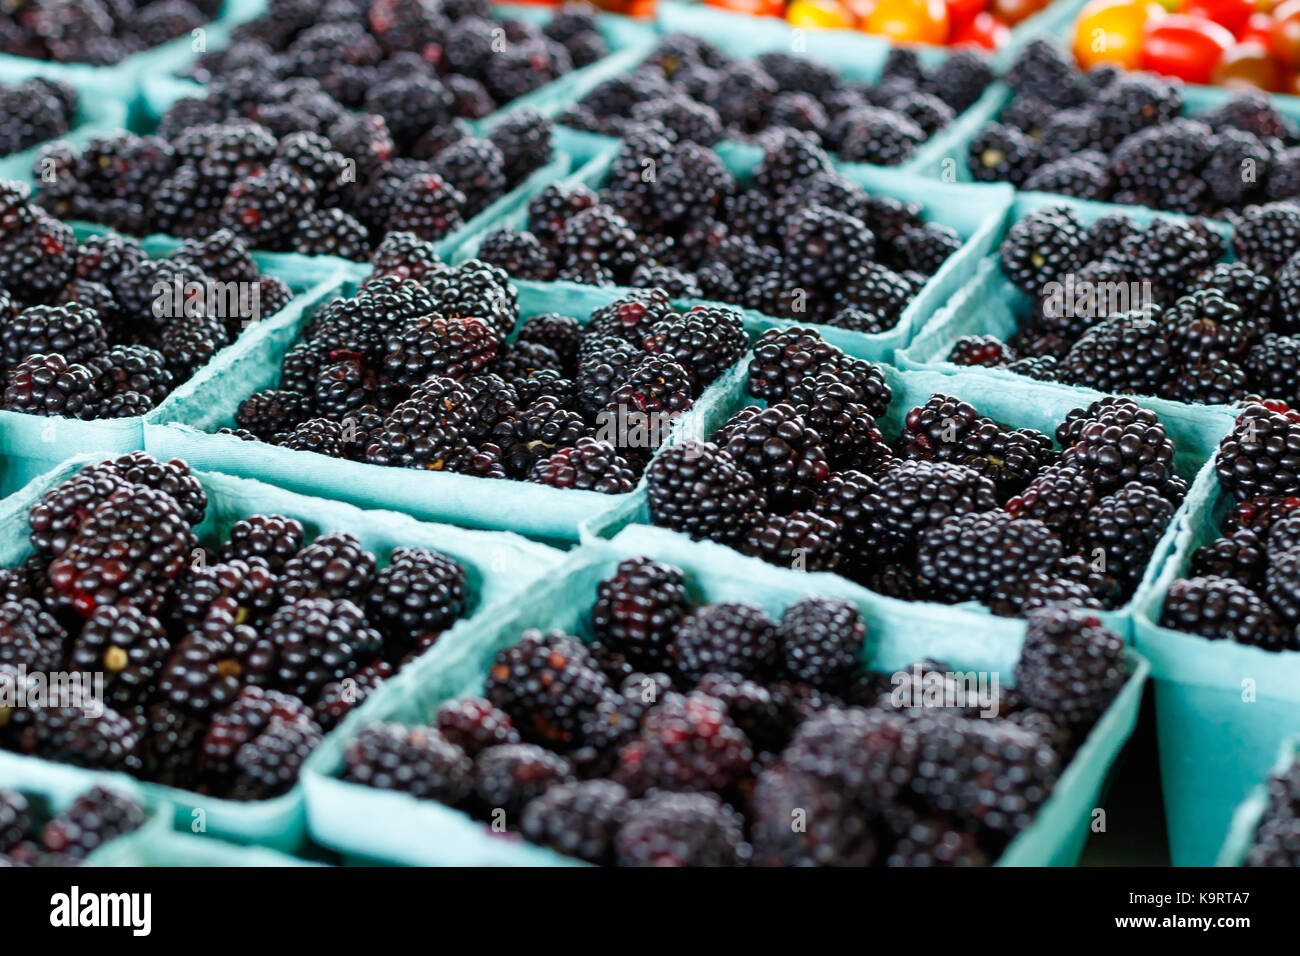 Fresh Blackberries at a produce stand. - Stock Image